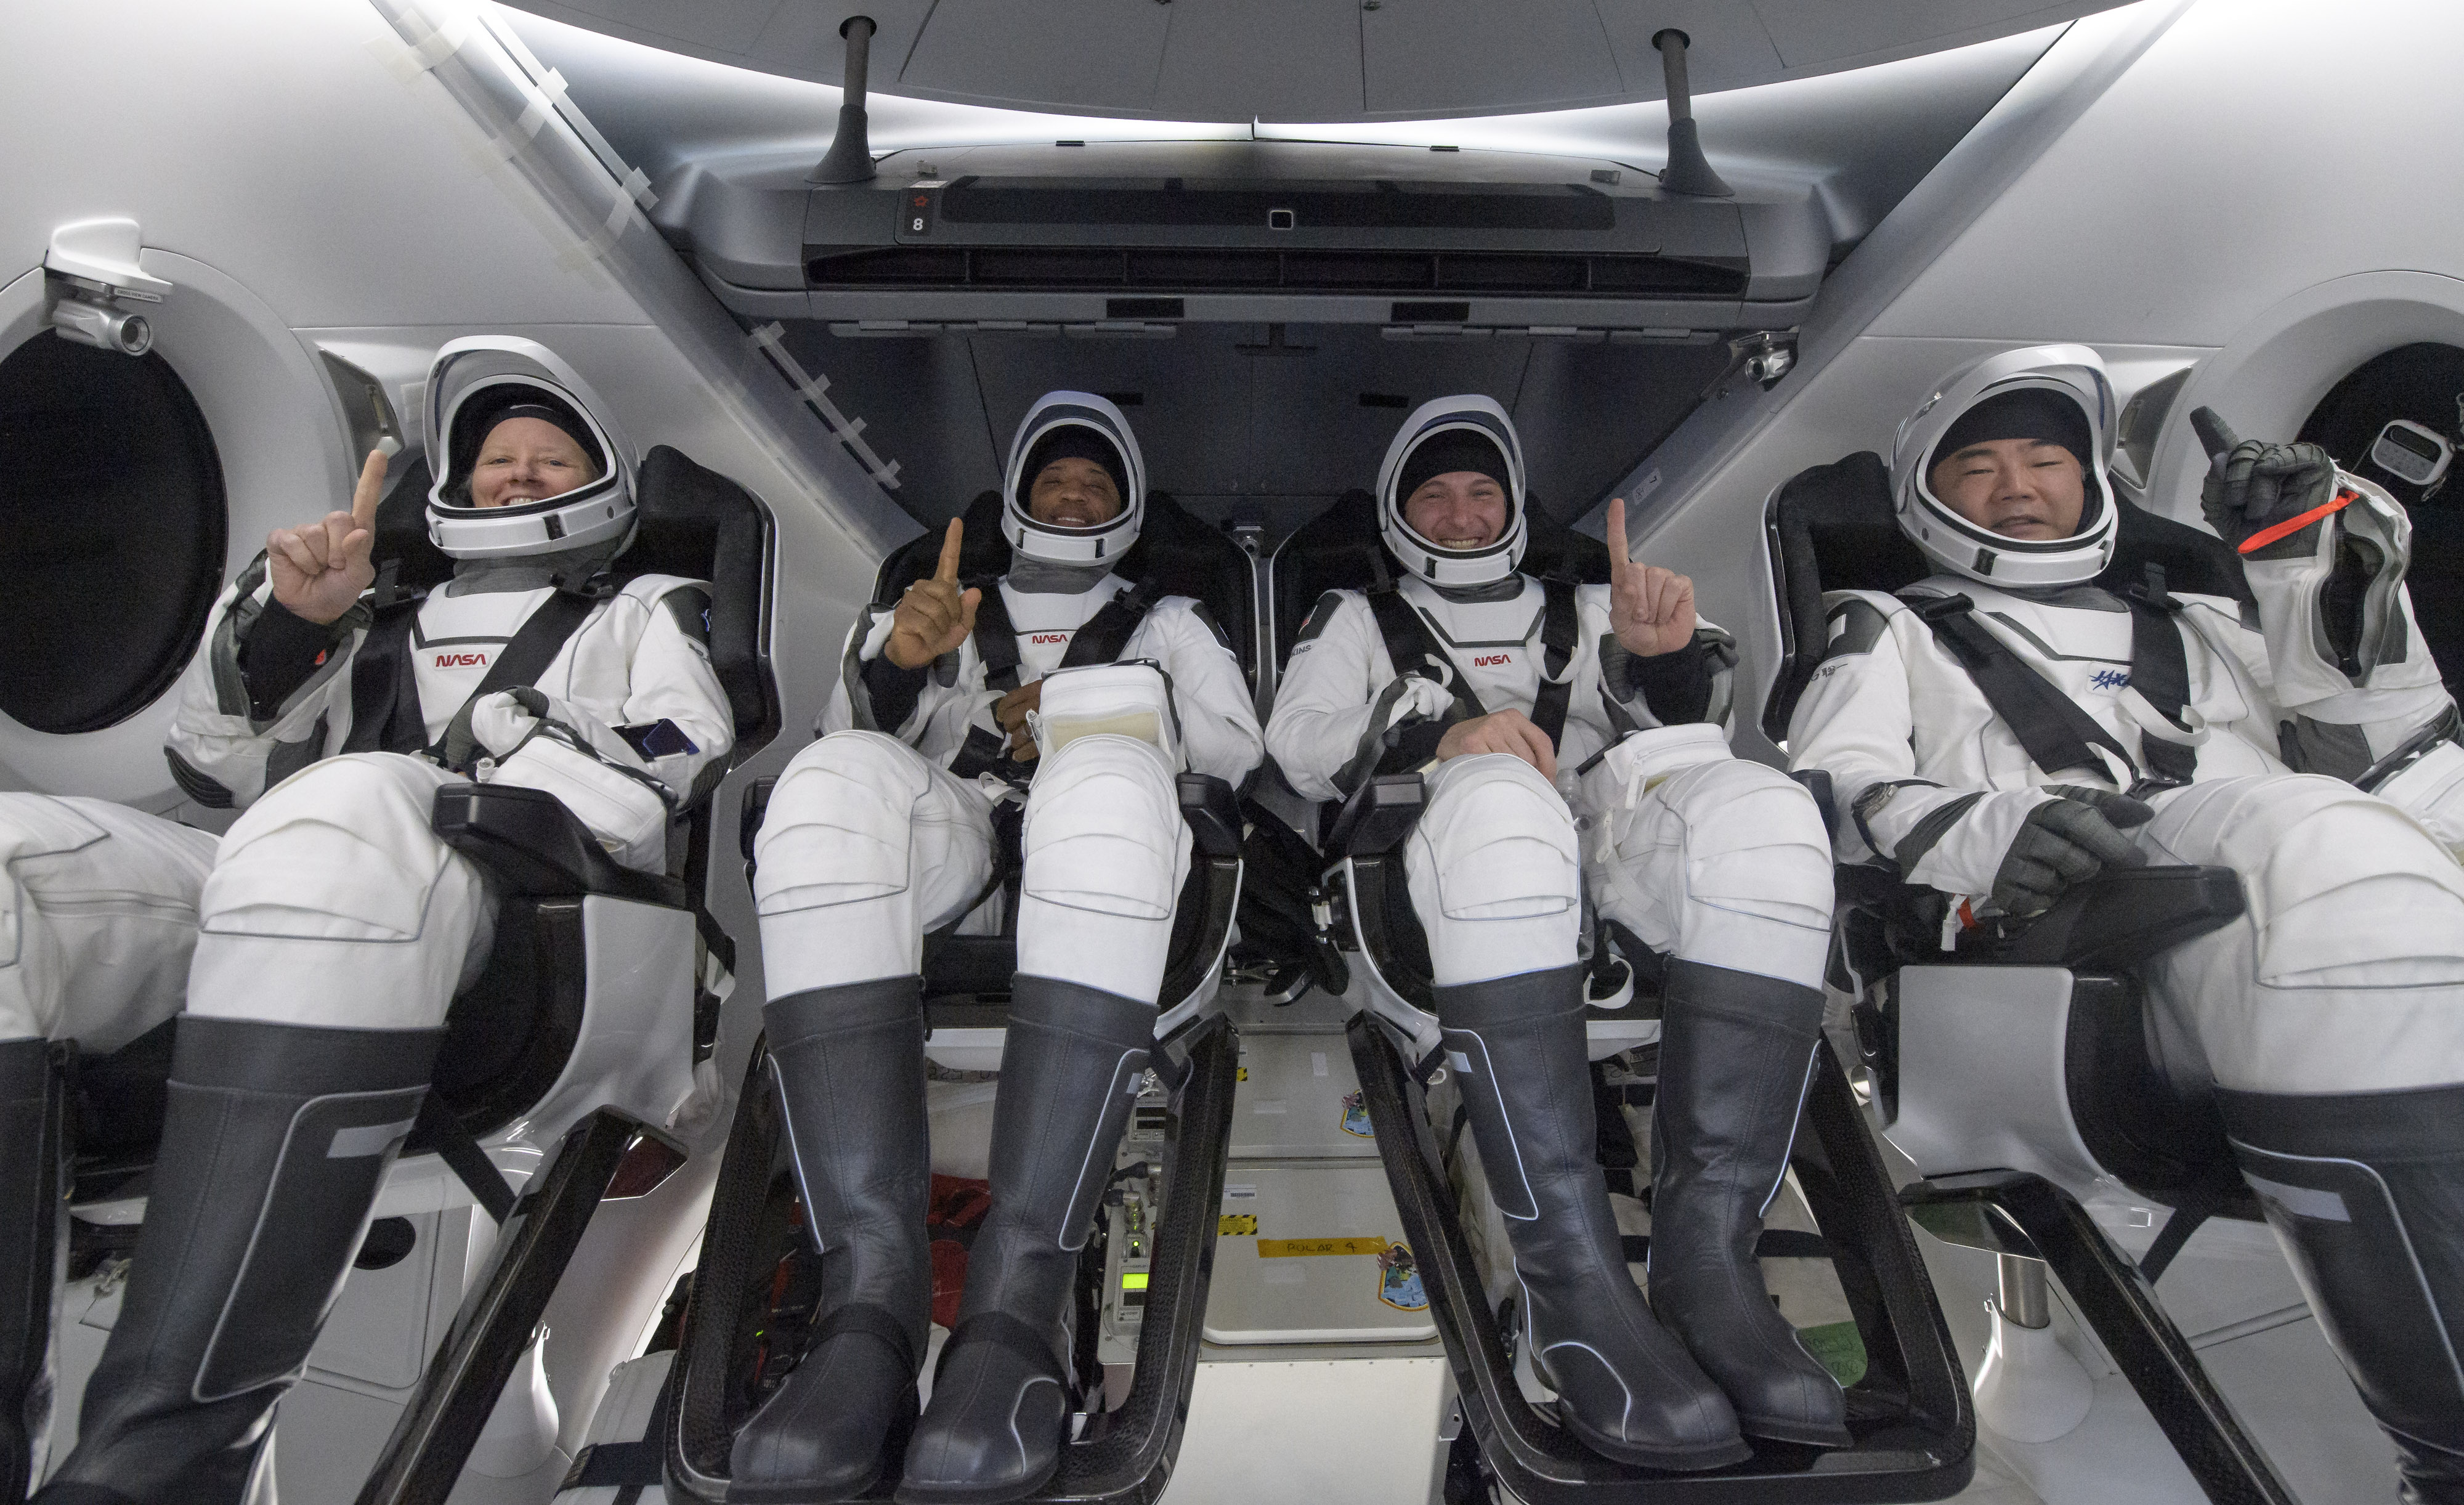 Crew-1 Astronauts Safely Splash Down After House Station Mission